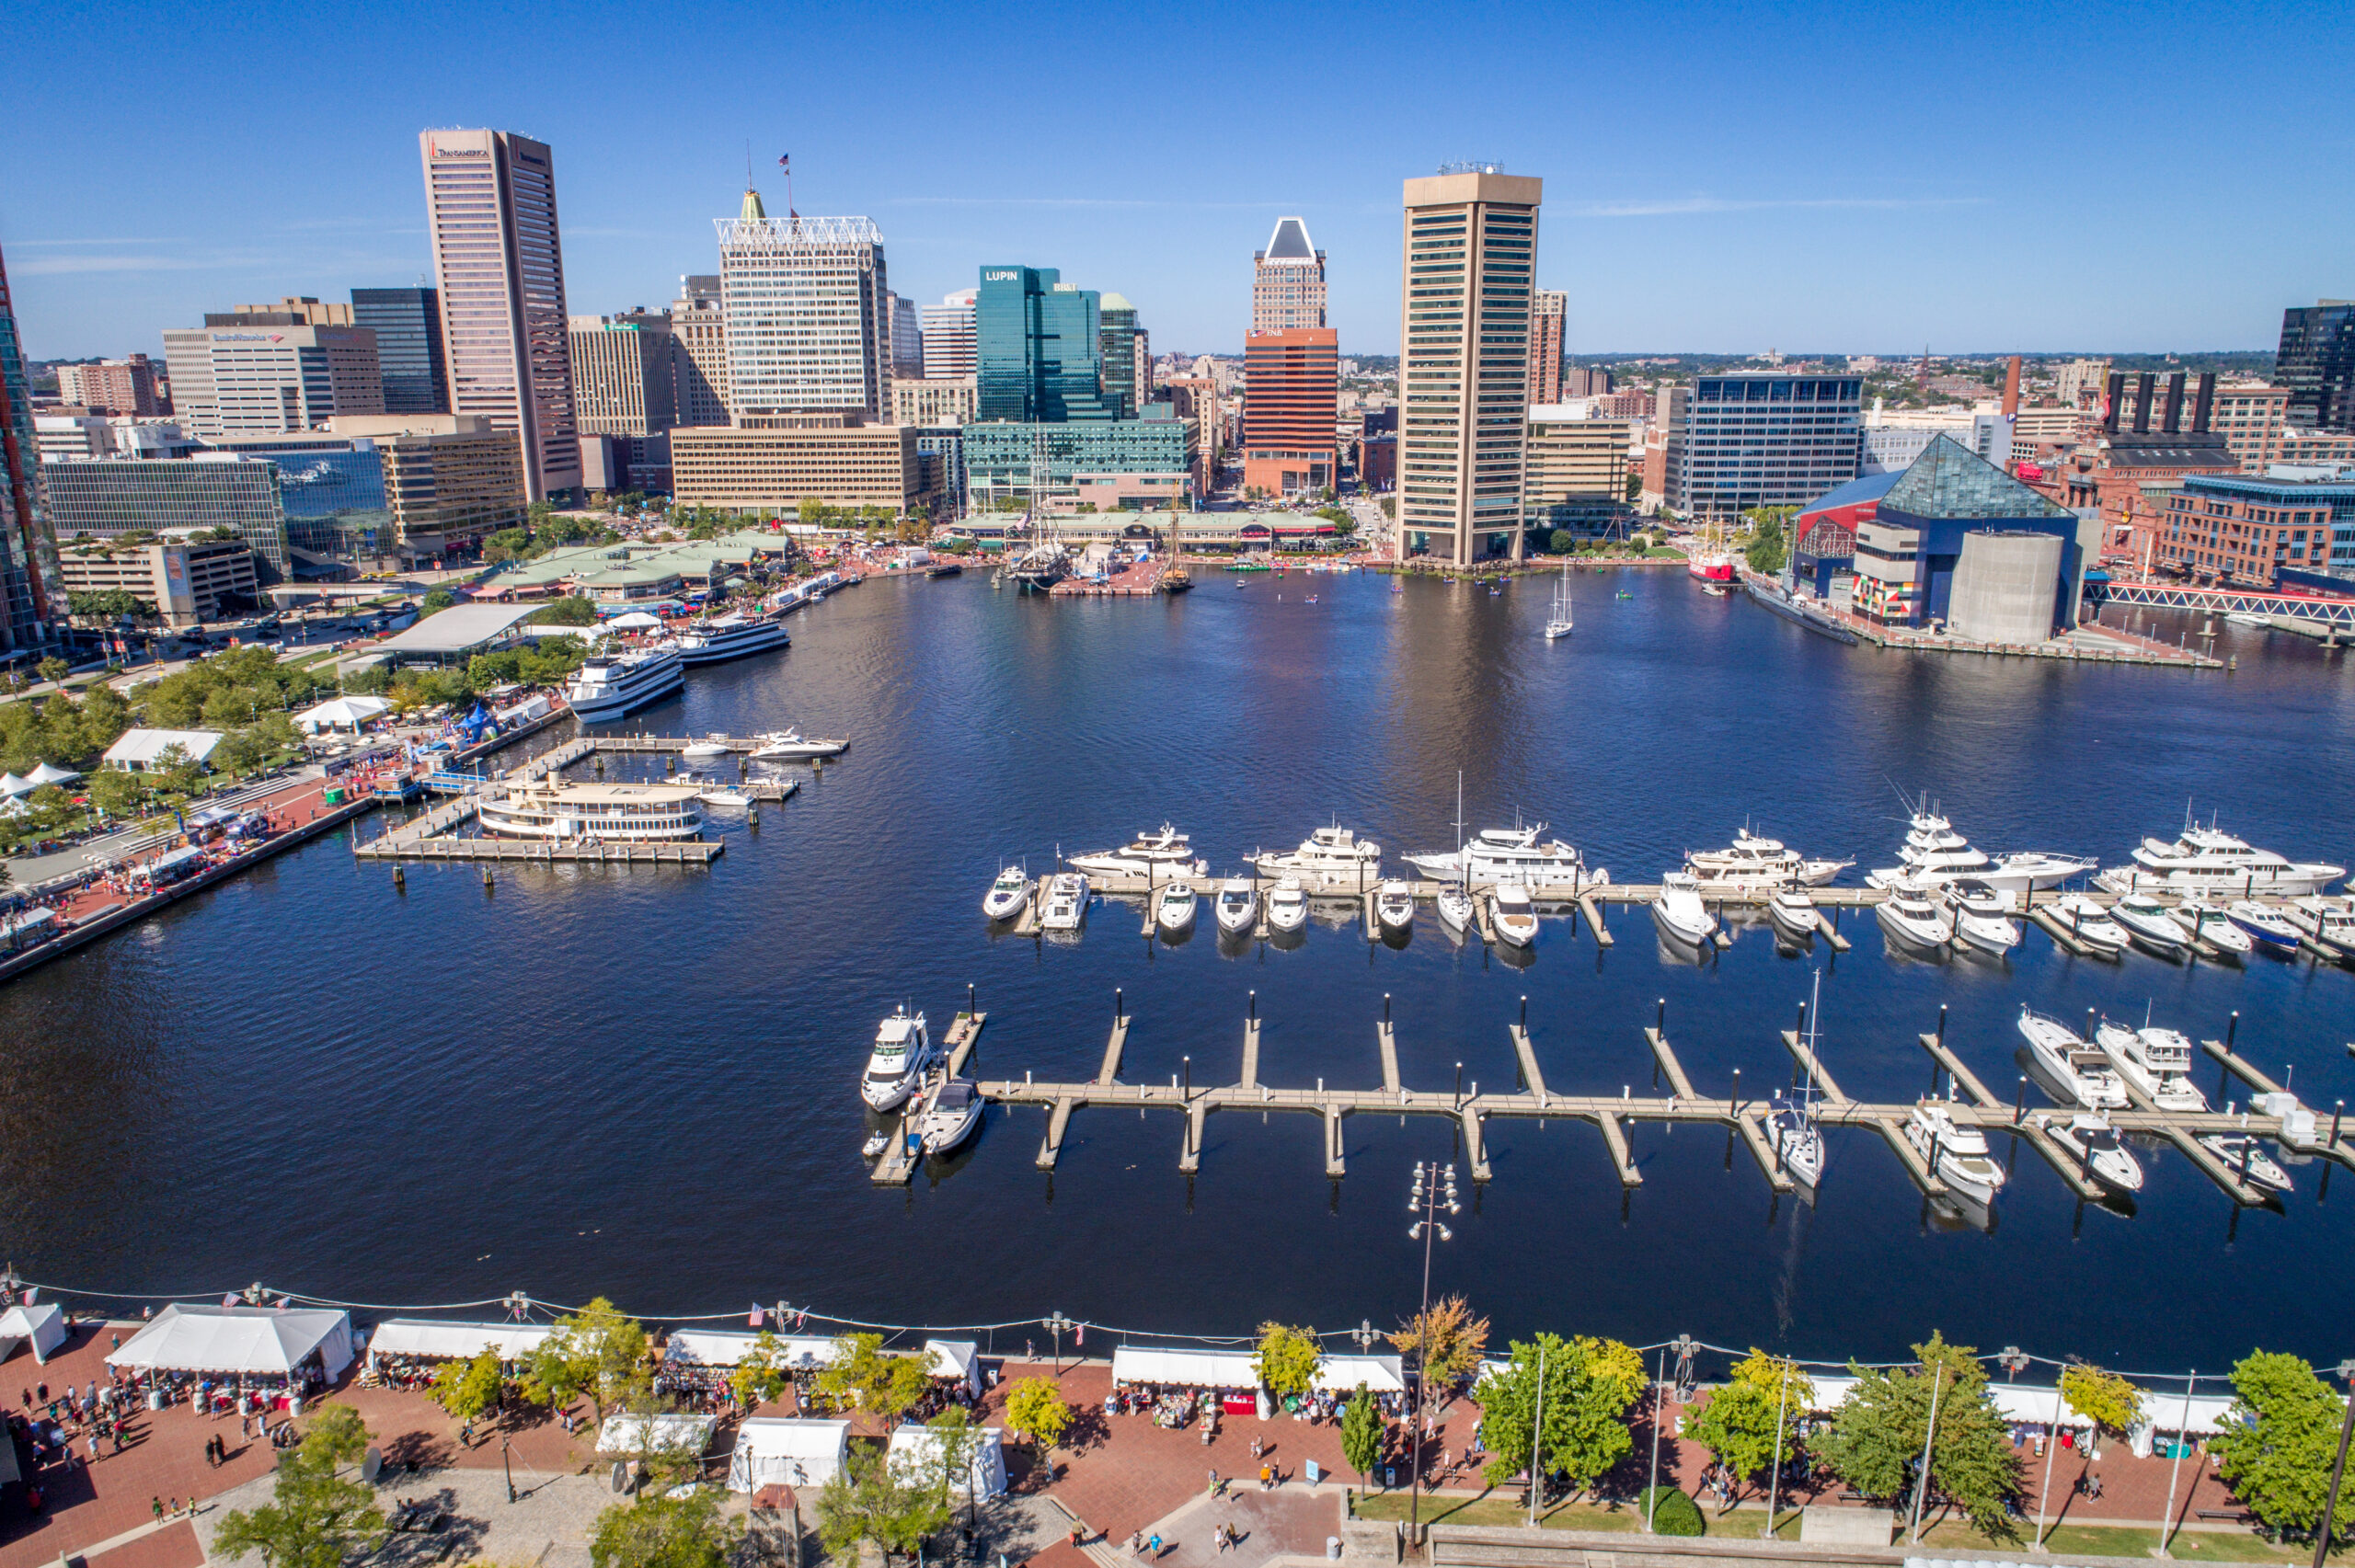 Aerial view of the Inner Harbor and Baltimore skyline featuring World Trade Center Baltimore, Baltimore, Maryland. Credit: Edwin Remsberg/VWPics/Universal Images Group via Getty Images